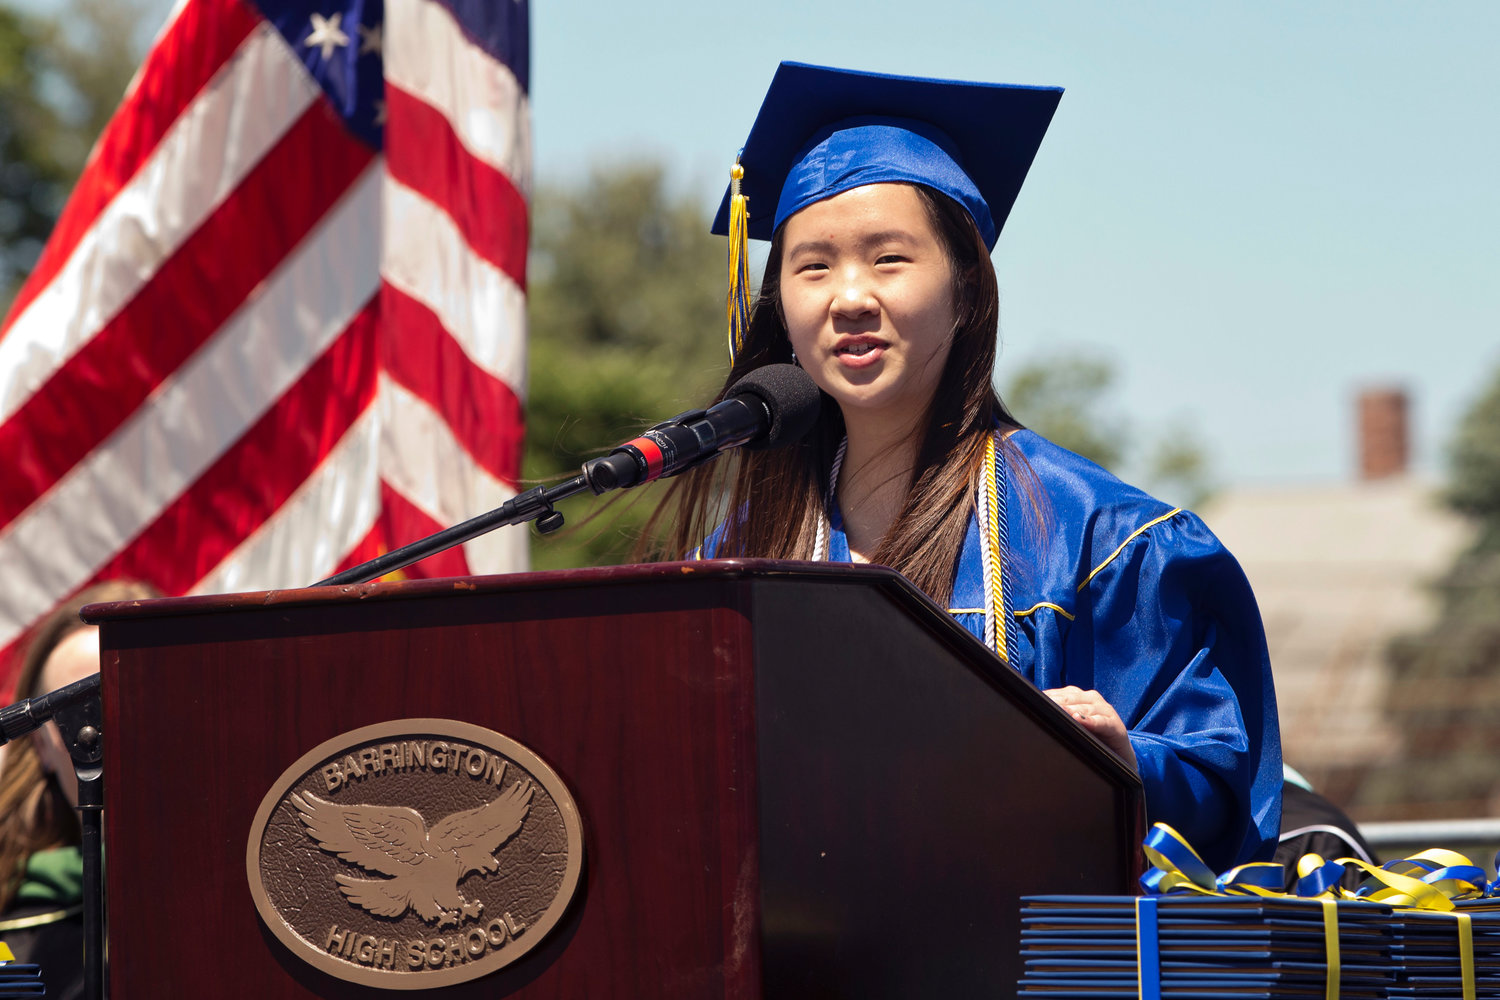 Barrington High School senior class president Josephine Kuo addresses fellow graduates.